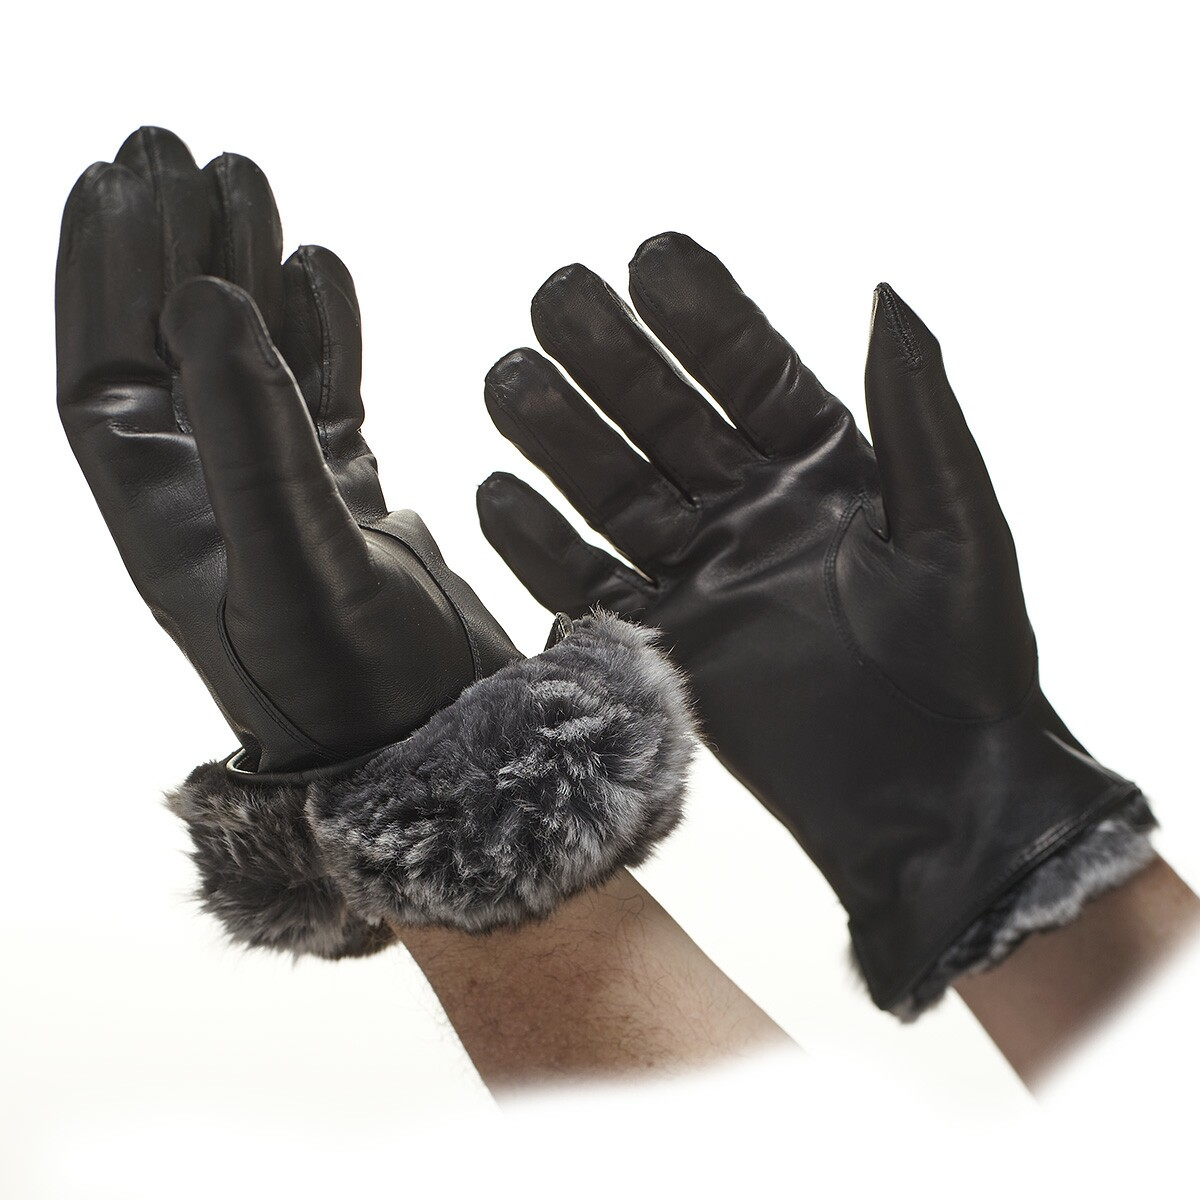 Mens leather gloves rabbit fur lined - Men S Chinchilla Leather Gloves Men S Fur Lined Gloves Gloves Online